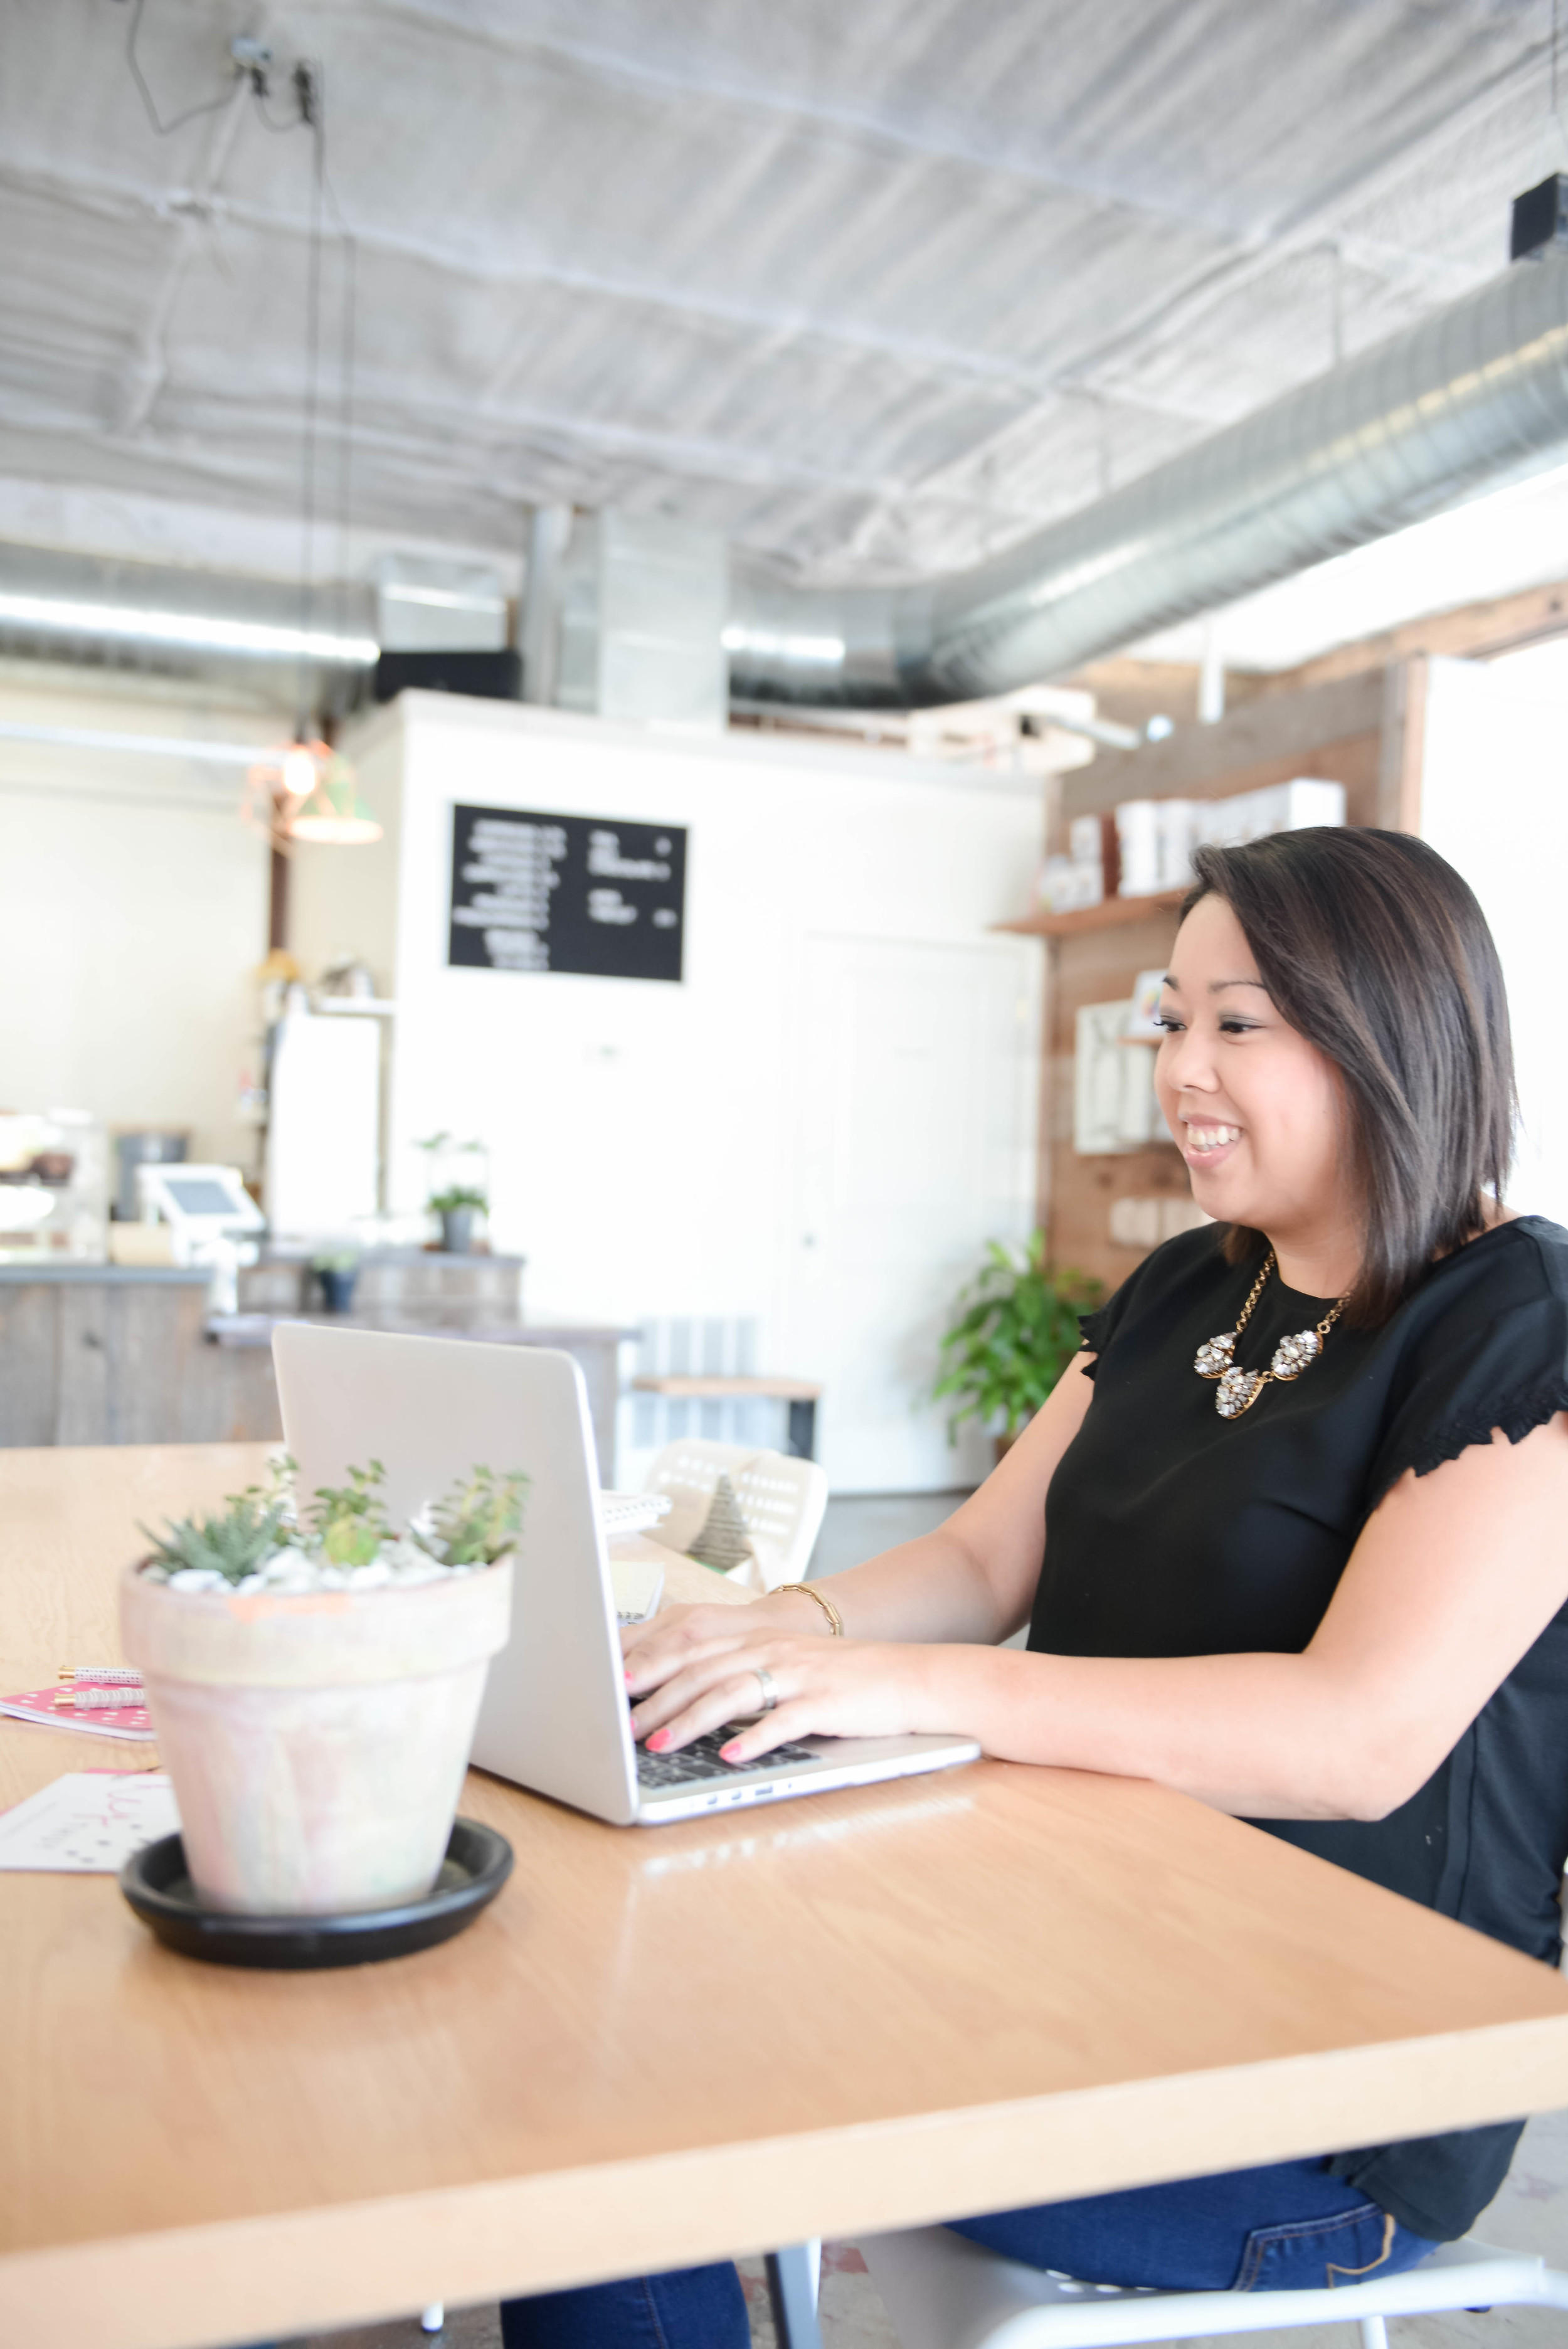 Hey Thuy lifestyle marketing photo session. Become the face of your business!